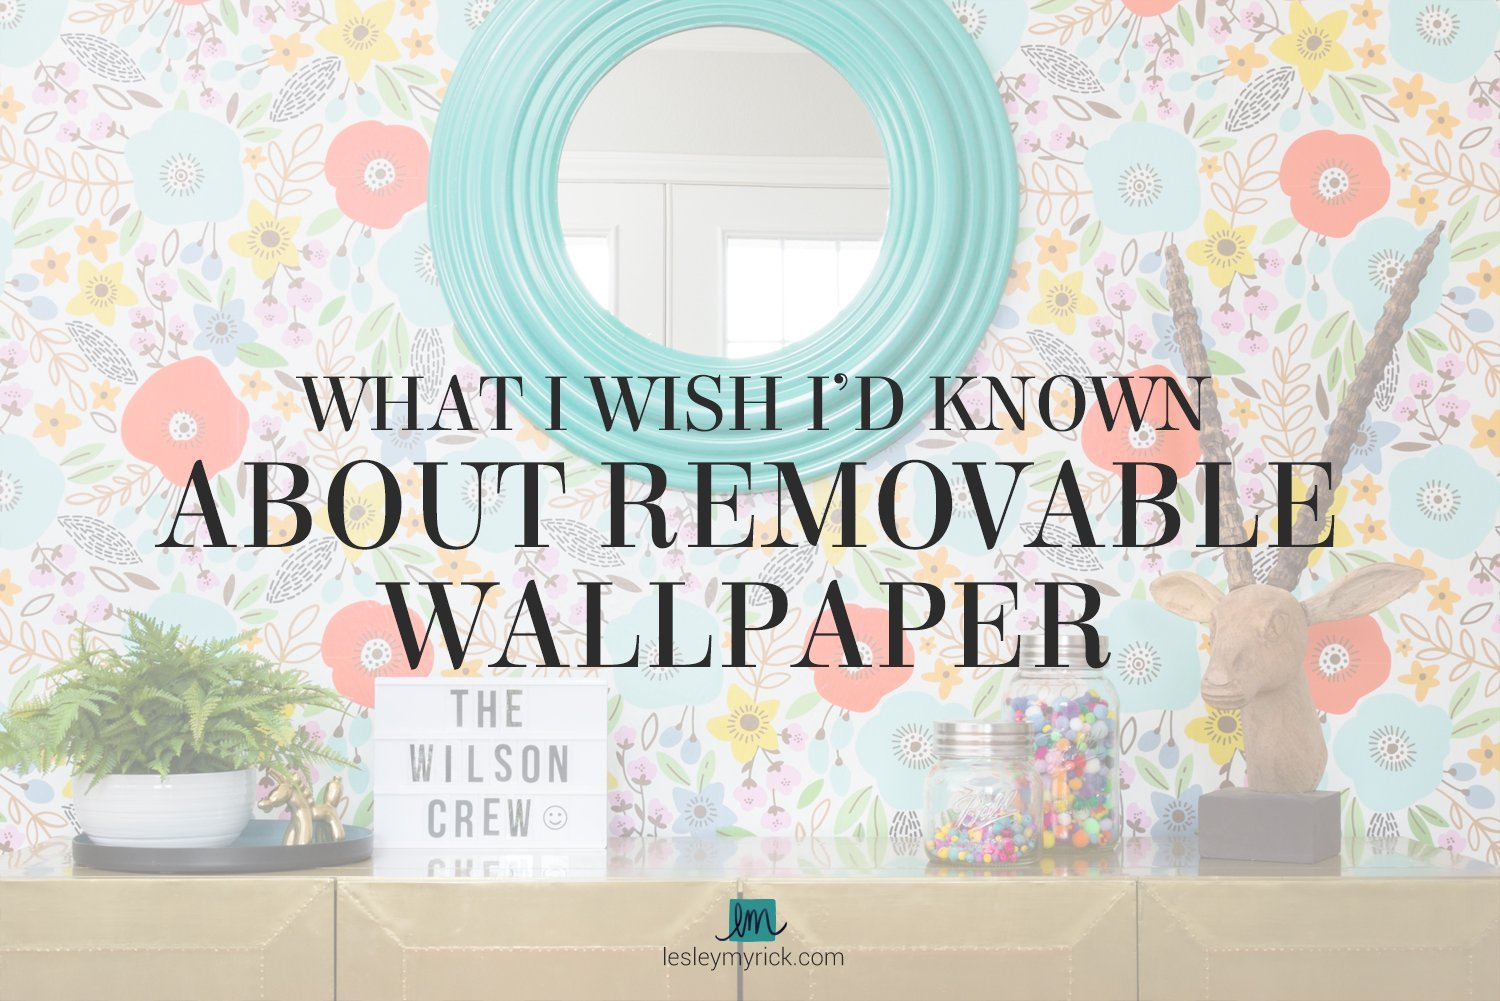 What I wish I'd known about using removable wallpaper - tips and tricks from interior designer Lesley Myrick